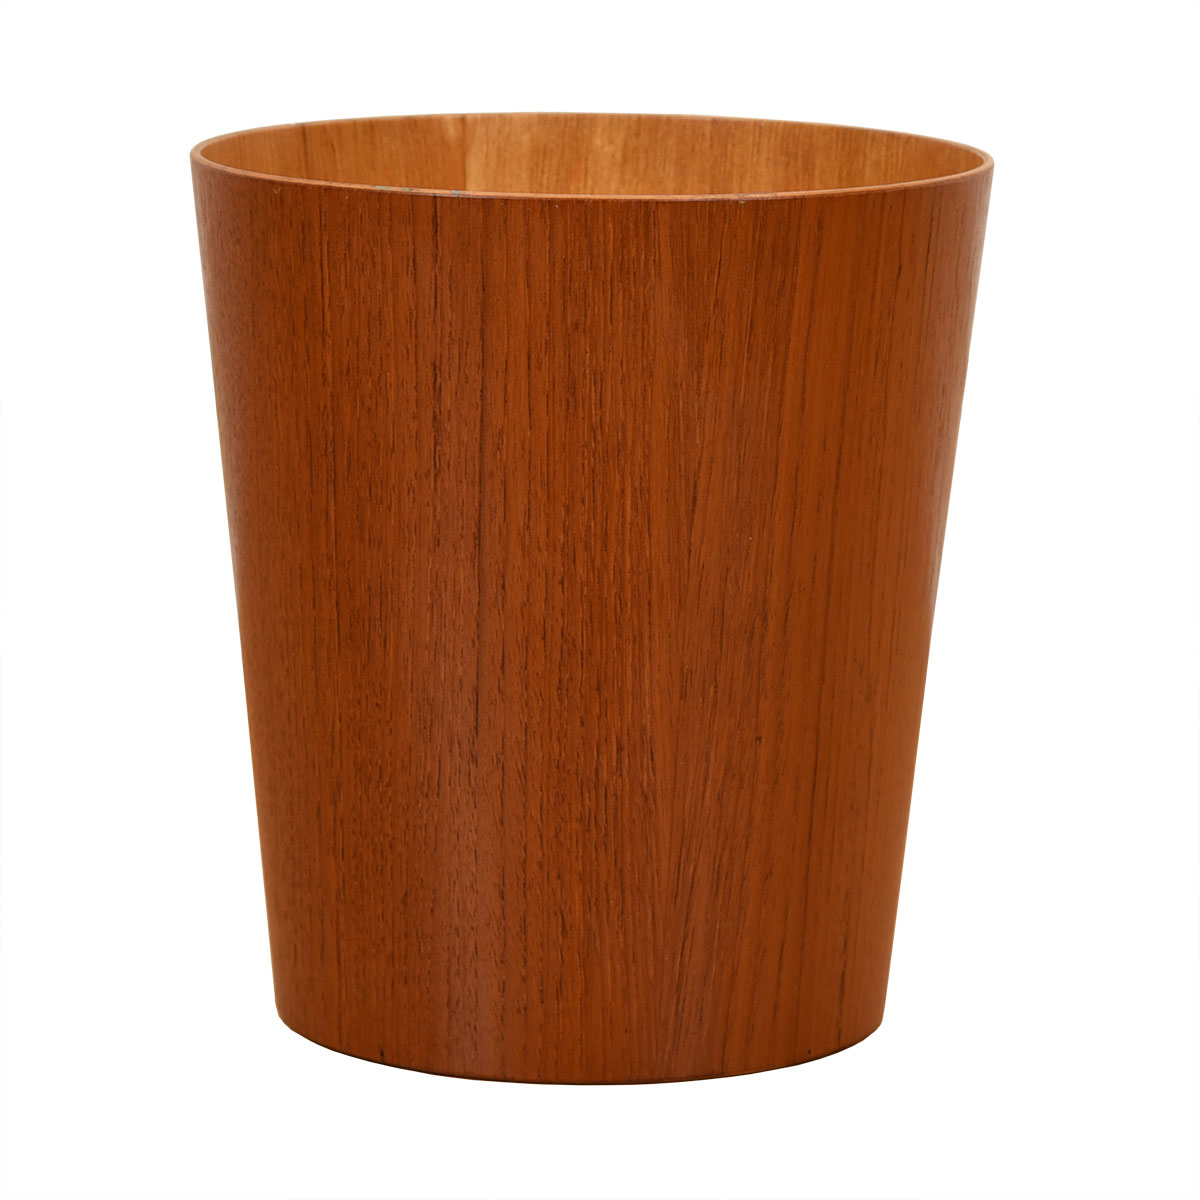 Small Danish Modern Teak Waste Basket